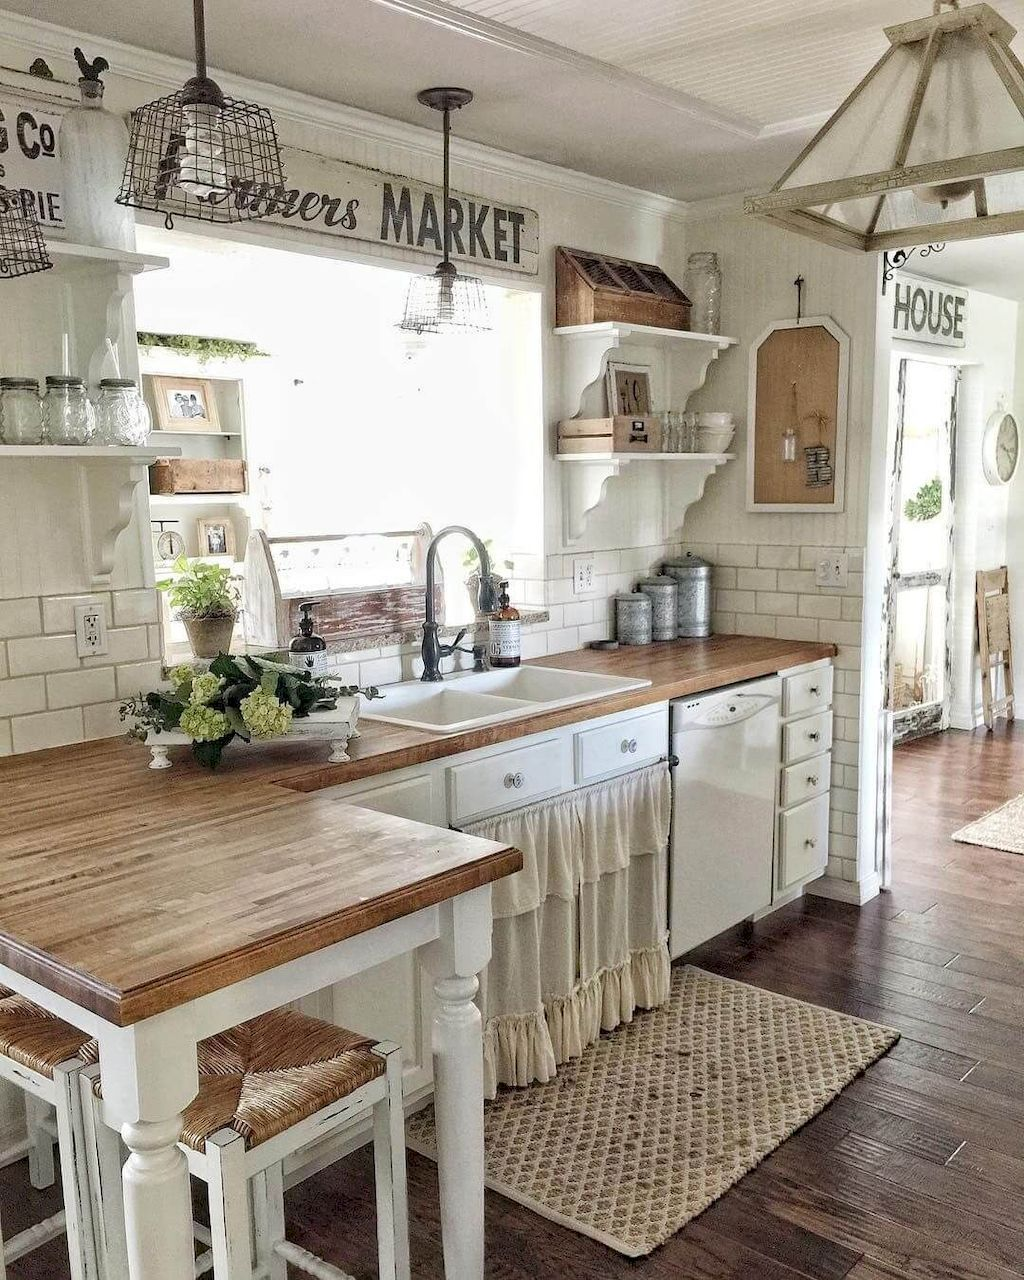 Best Rustic Farmhouse Kitchen Cabinets In List 71 On Oneonroom